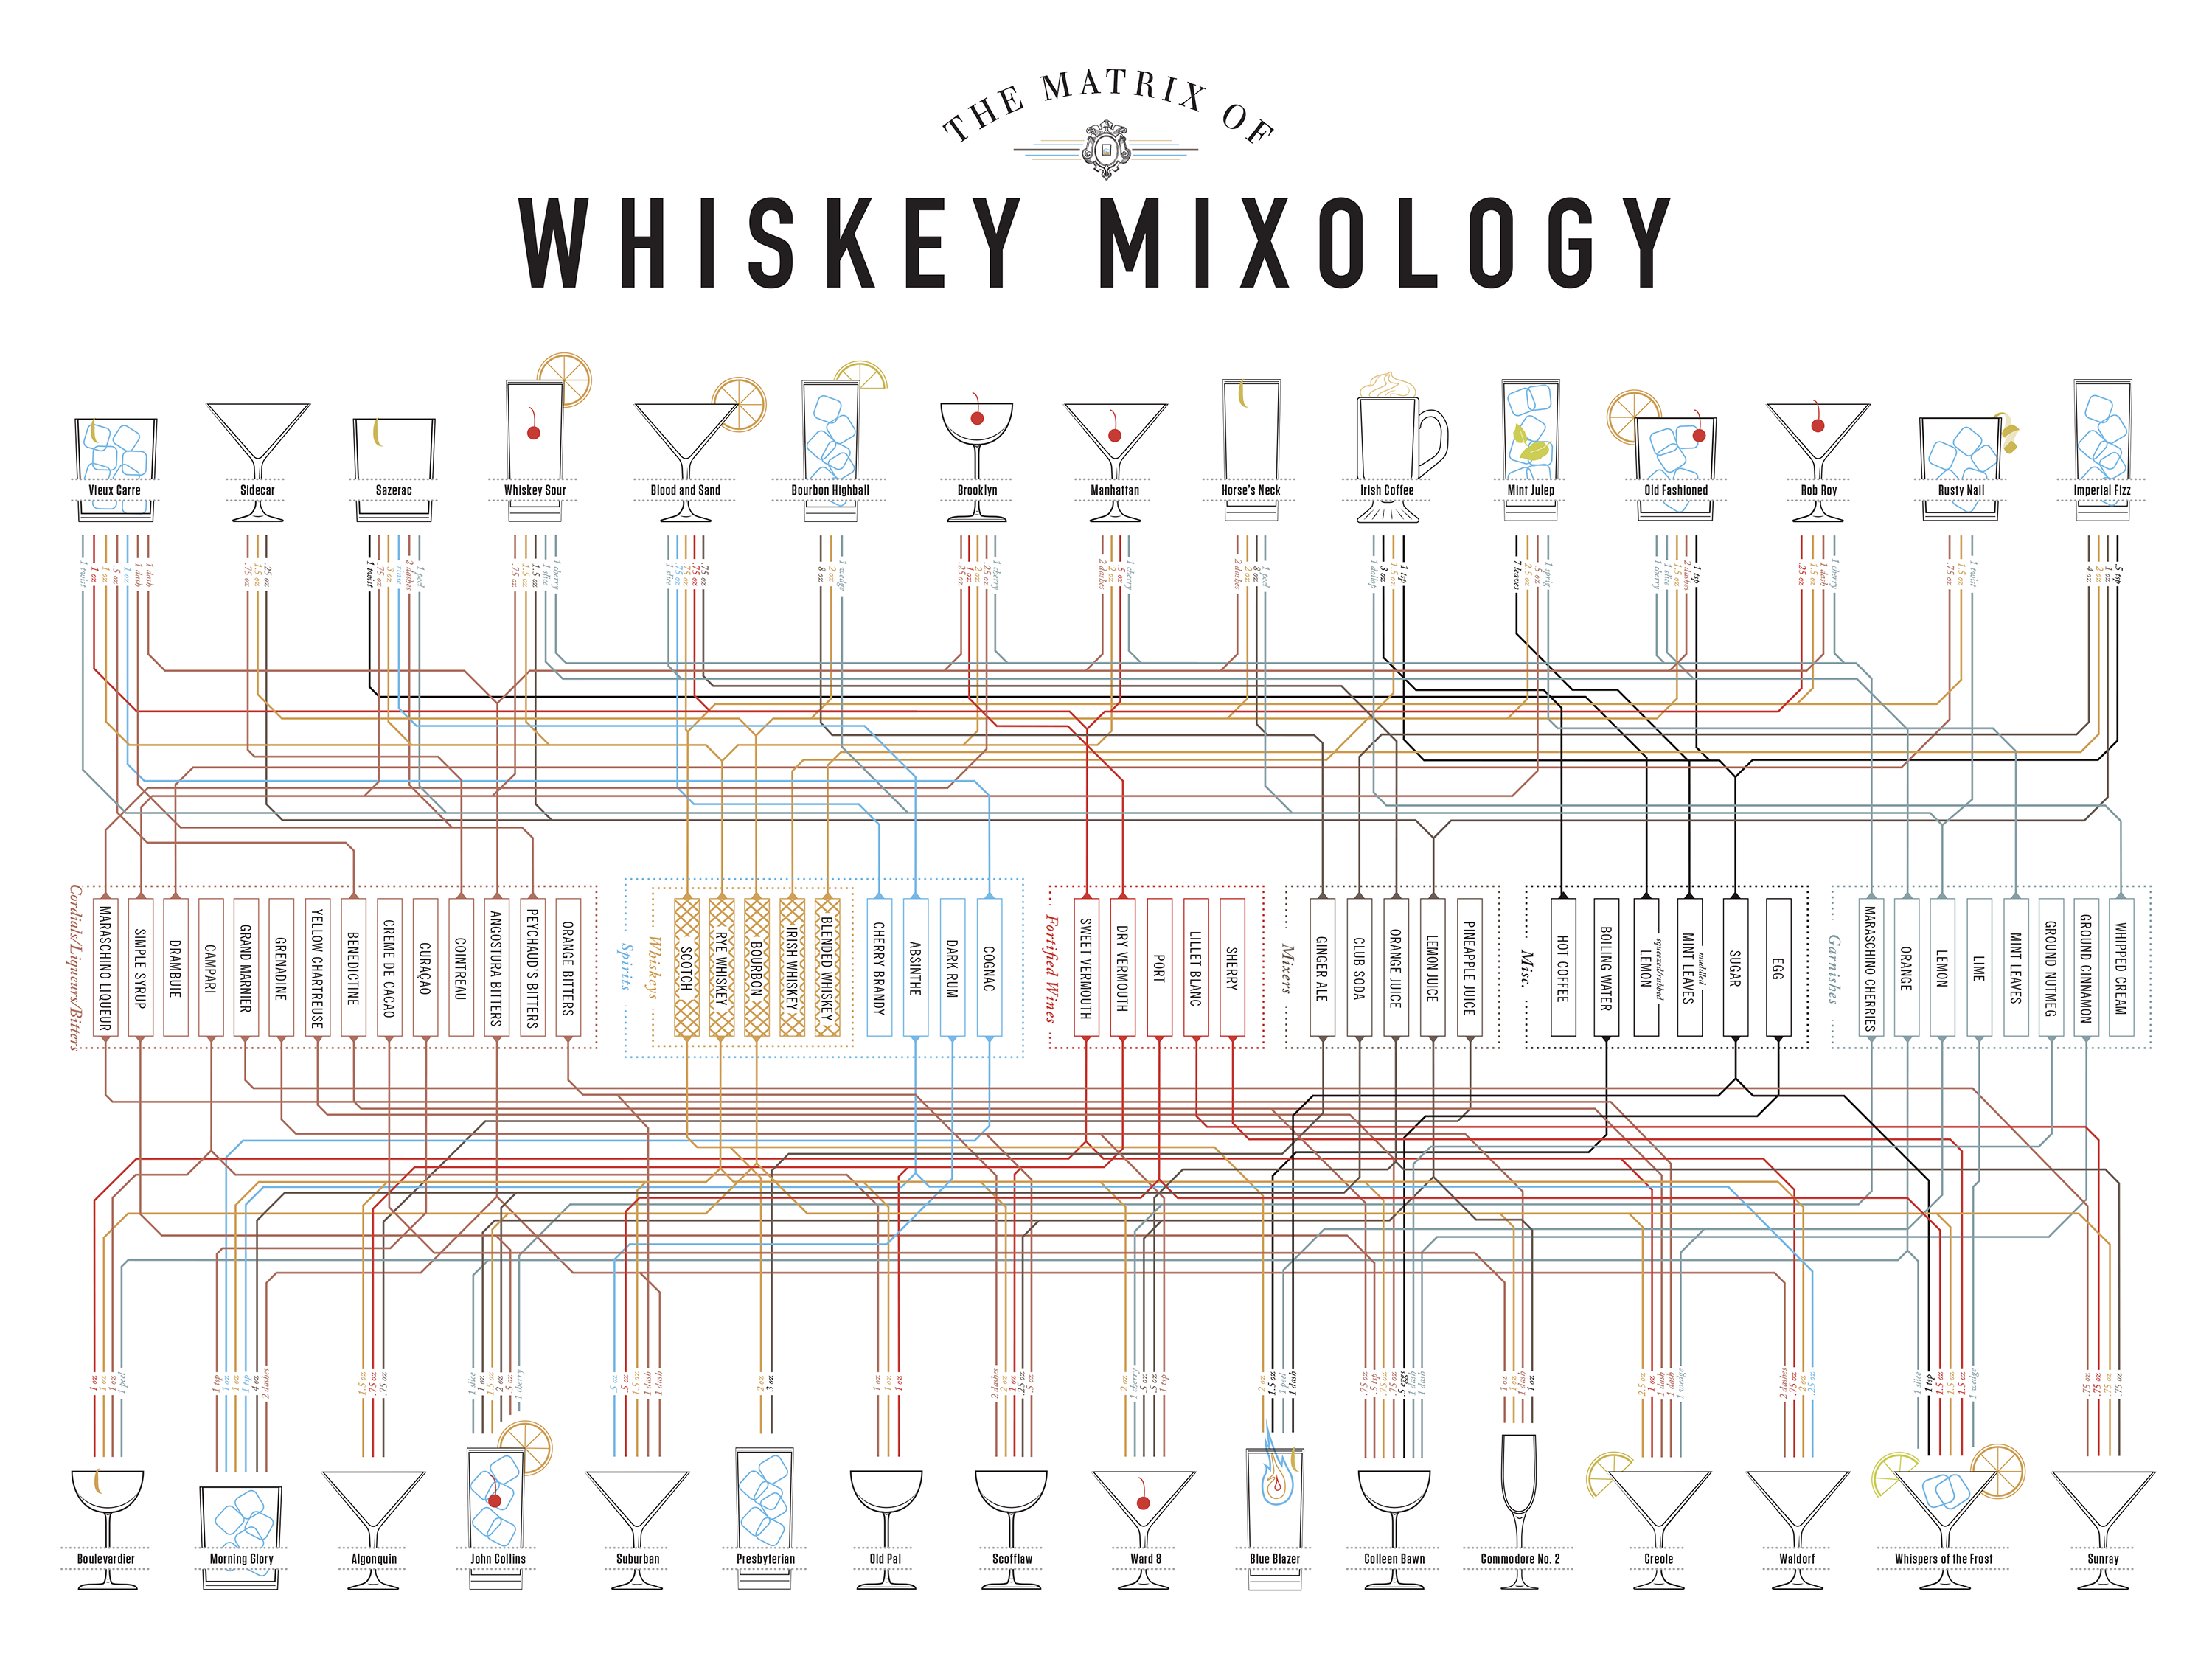 P-Mixology_Whiskey_Zoom_a48f5952-6916-4e8a-8ec8-8dbb973ef5c7